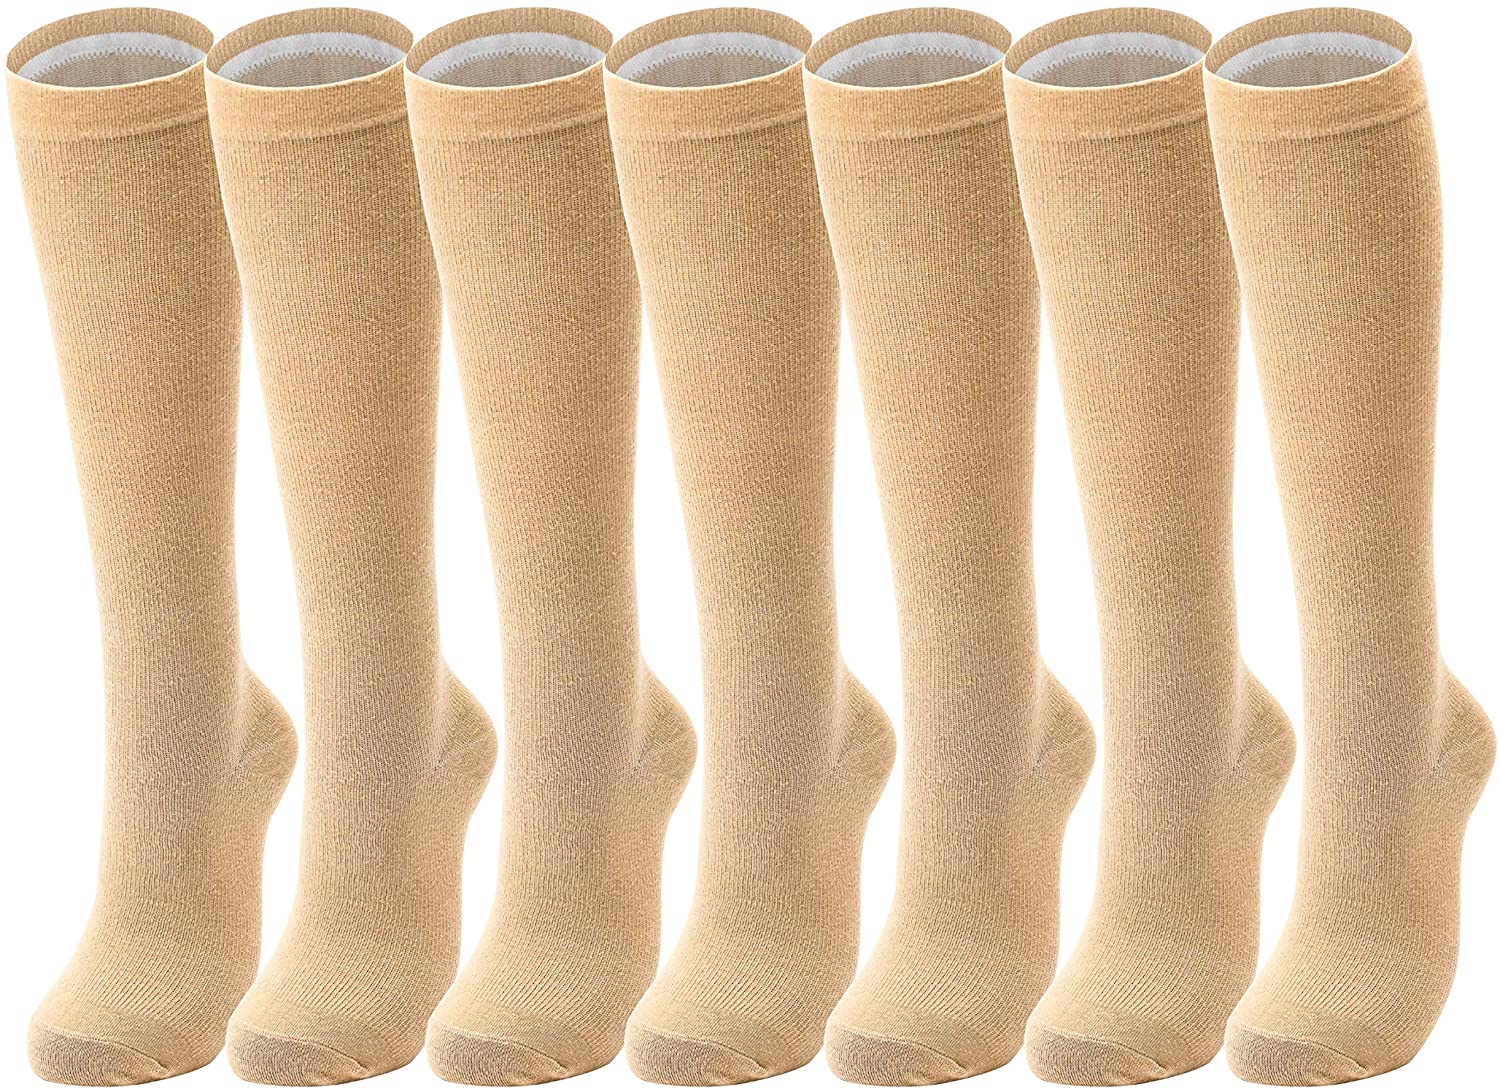 Cored Health Running Cotton Compression Socks Women Men 15-20mmhg Nurse 7RL